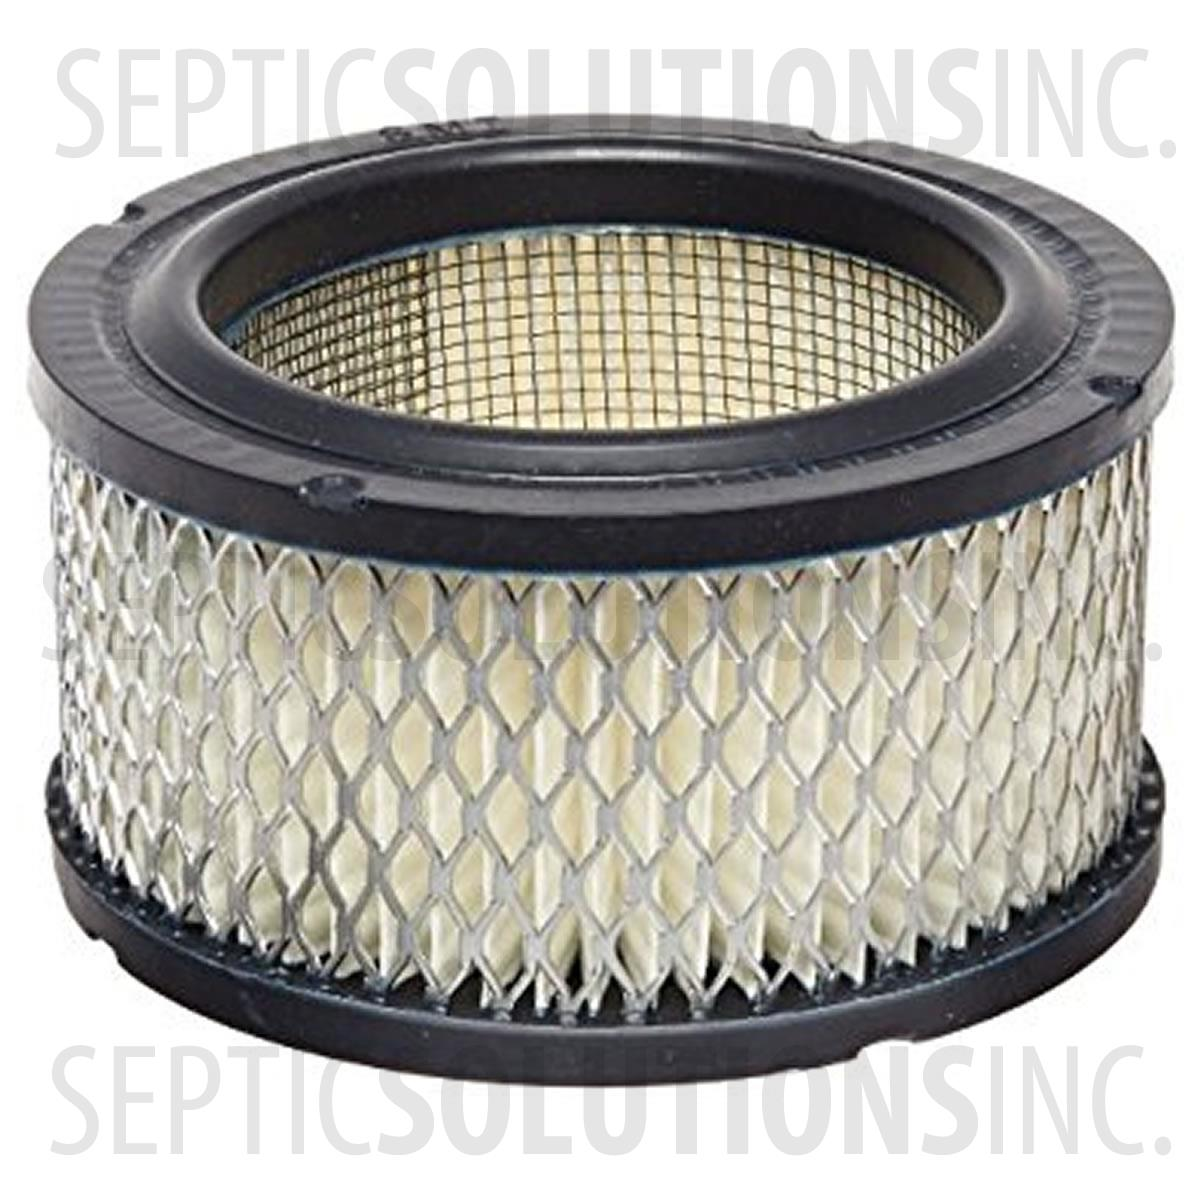 Septic Tank Blower : Filter element for scl blowers part number fe septic